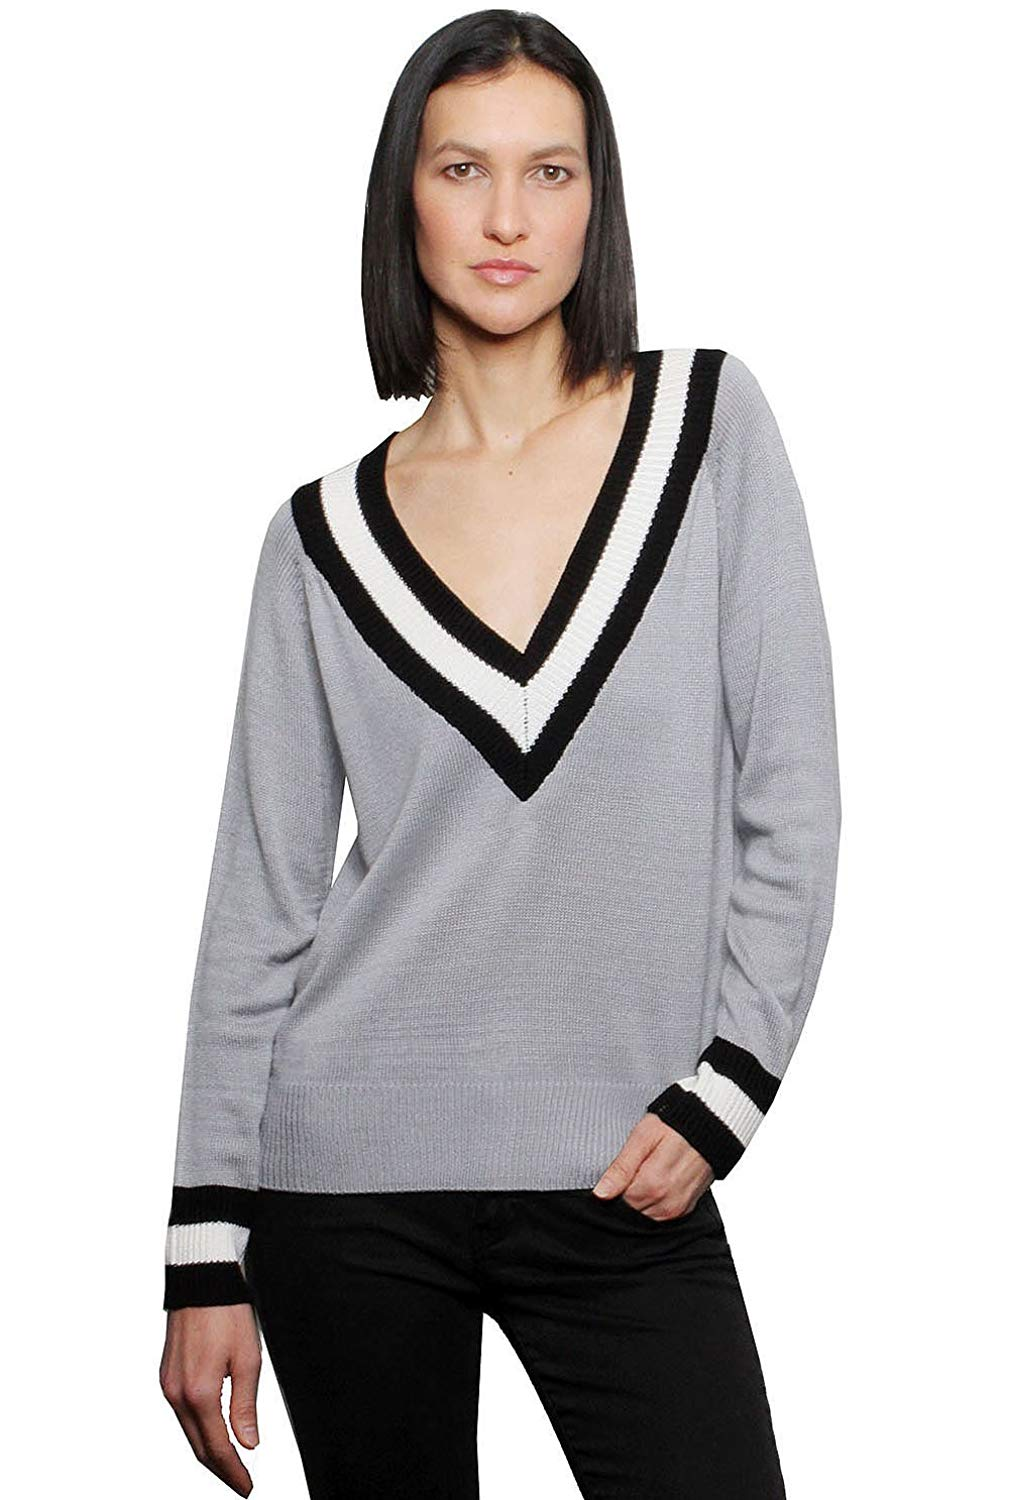 Fred and Sibel Women's Deep V-Neck Sweater Varsity Pullover Knit Jumper Top - 3 Colors Grey, Black, Pink